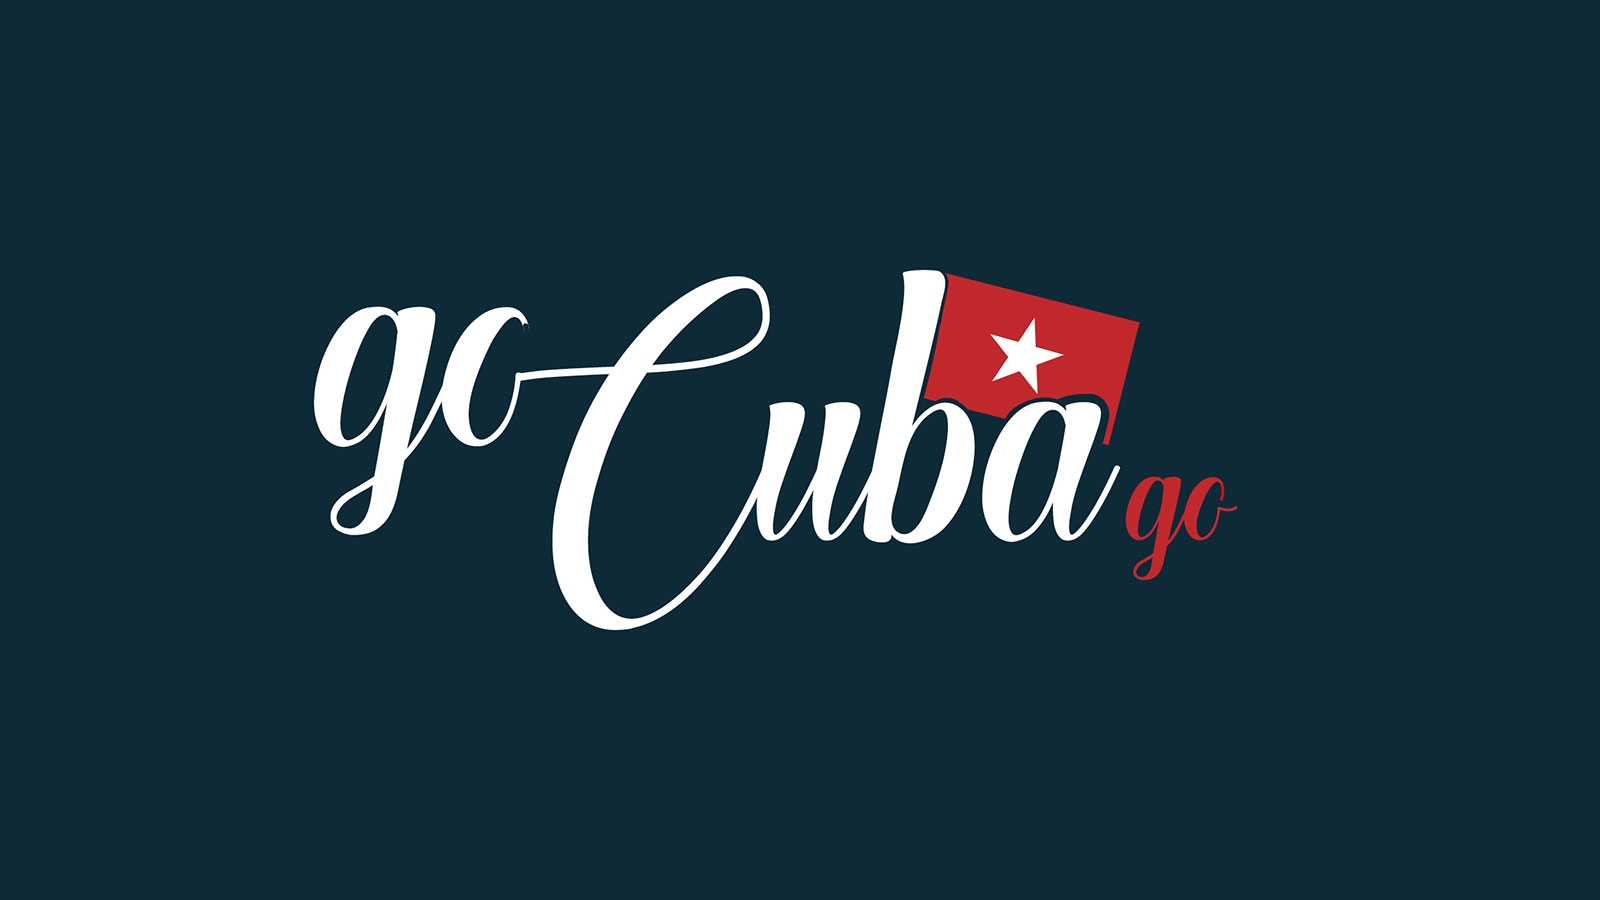 Go Cuba Go | gocubago.com | 2018 (Logo No 01) © echonet communication GmbH